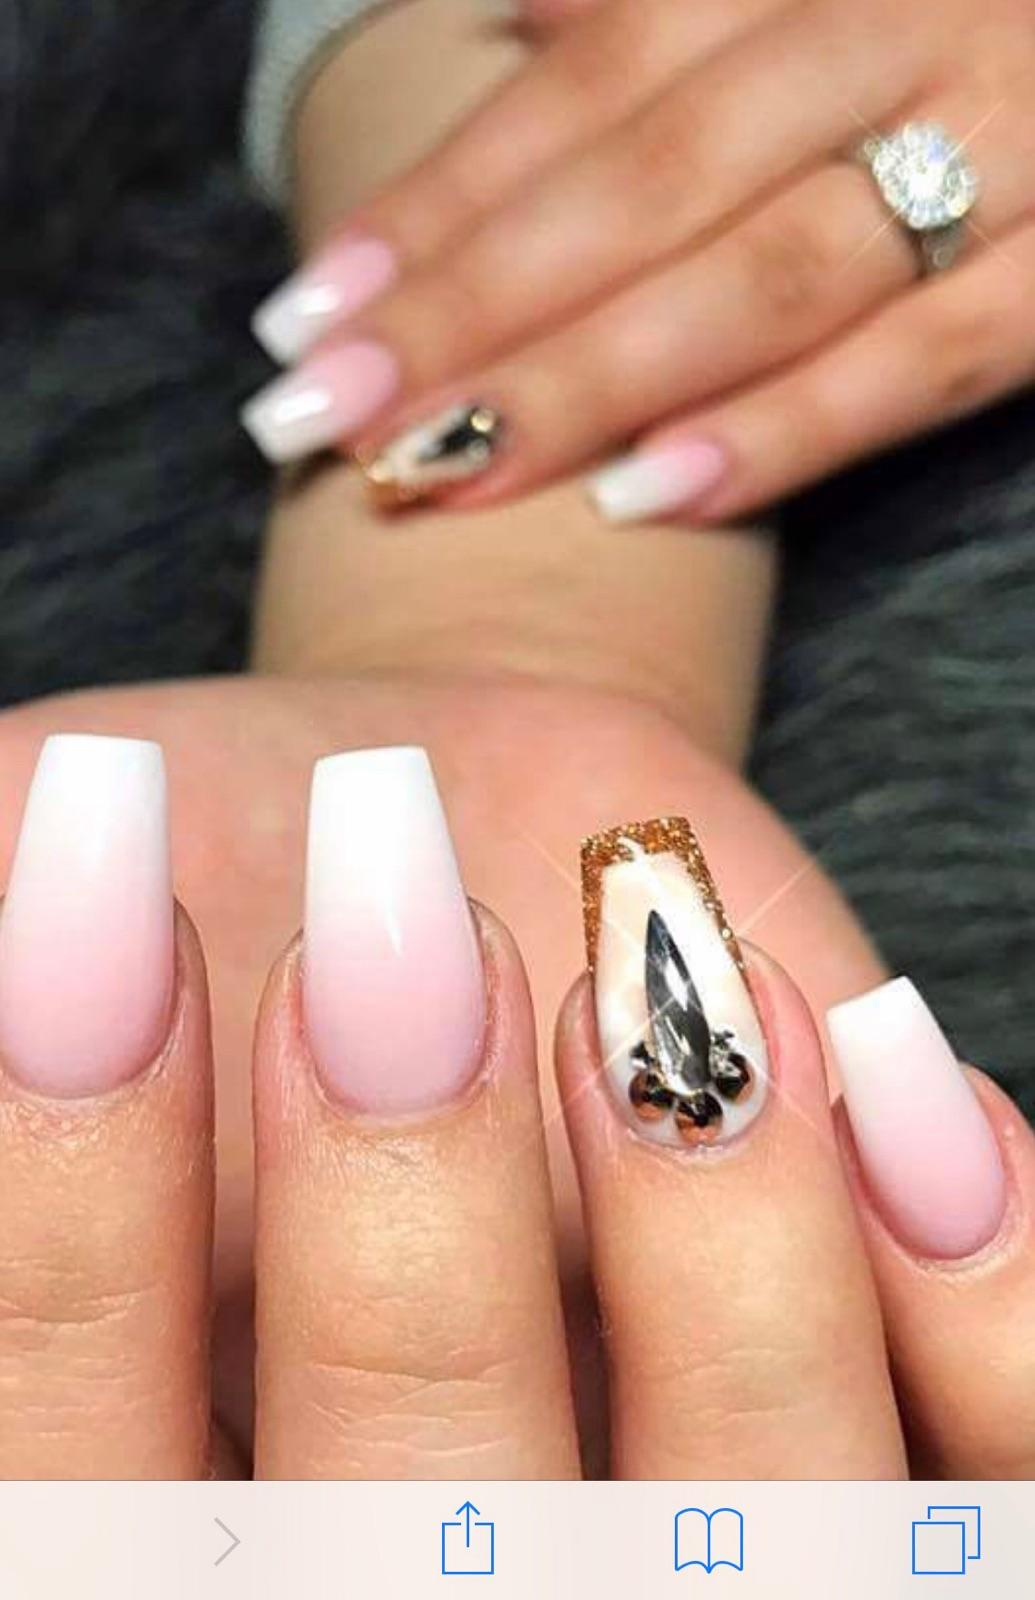 Sparkle Nails Salon in Watertown, WI 53094 - ChamberofCommerce.com